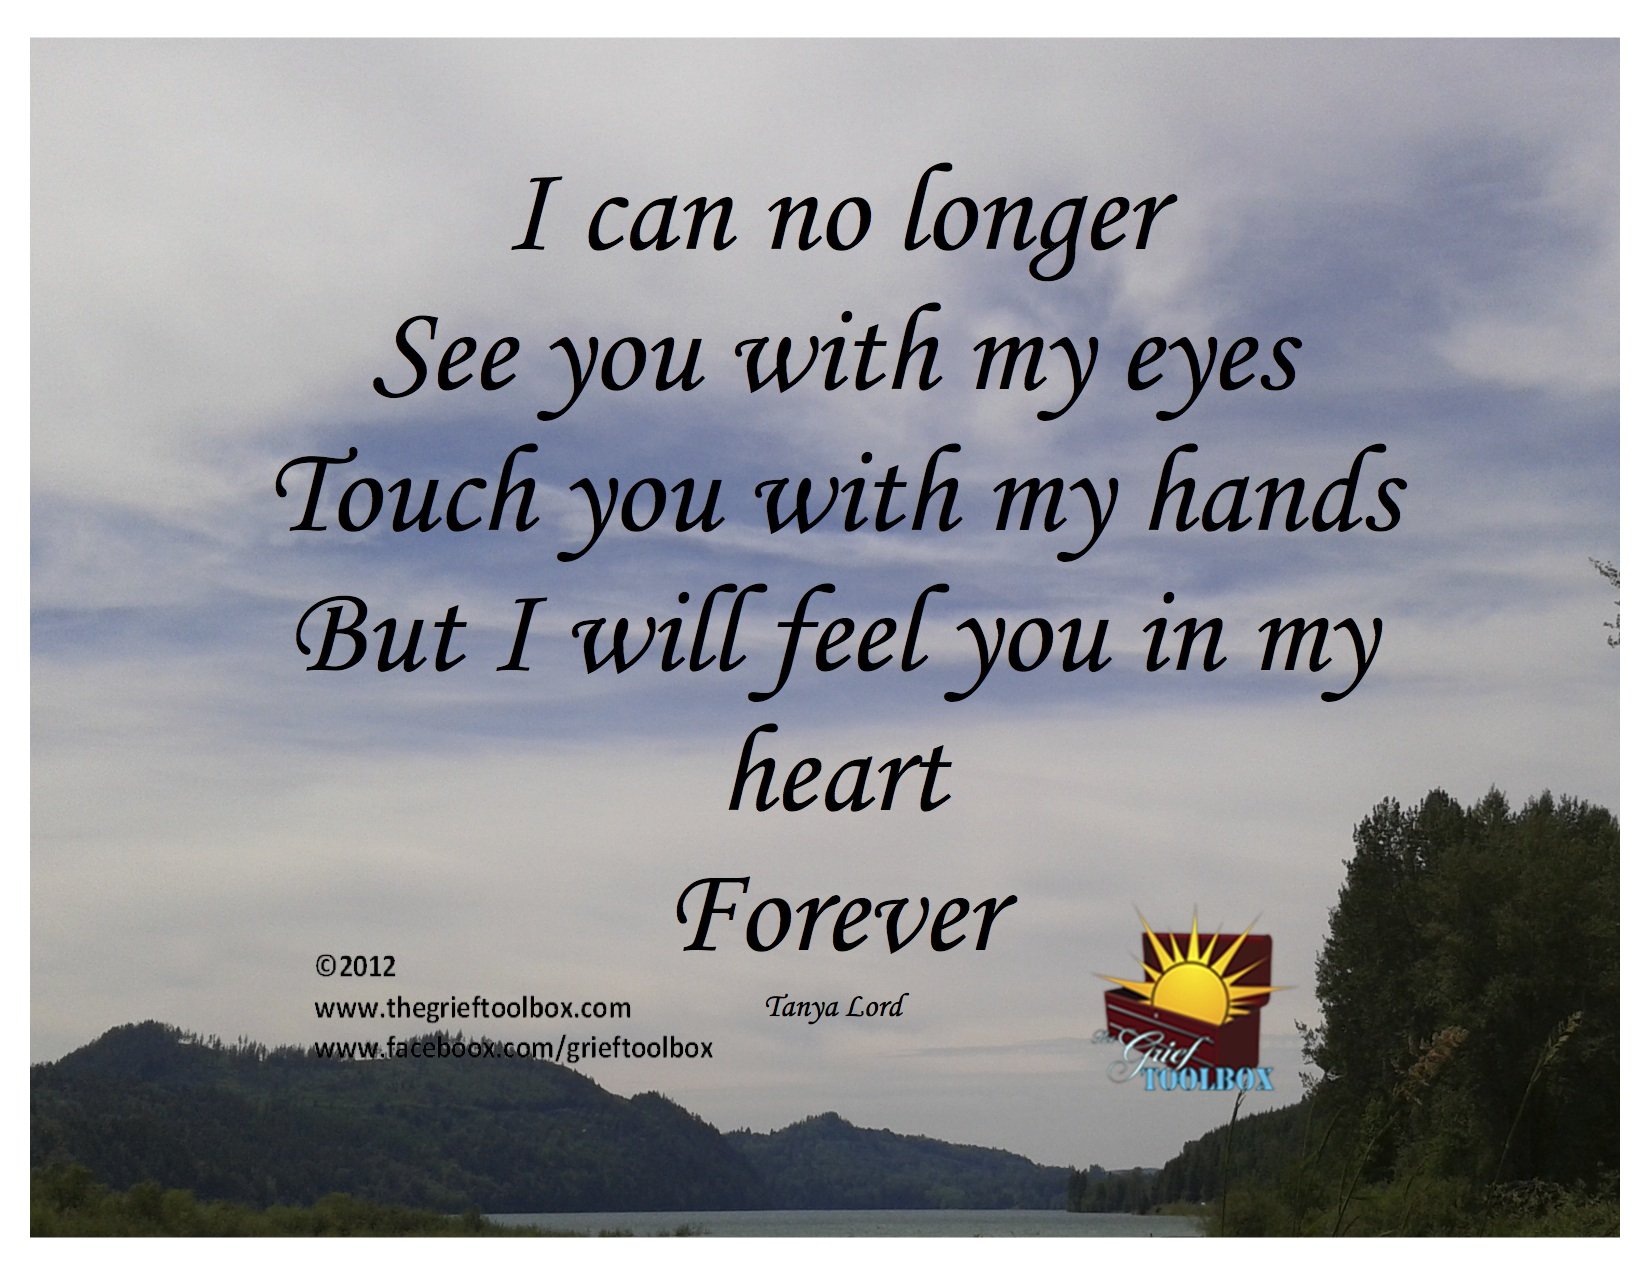 Feel you in my heart forever - A Poem | The Grief Toolbox